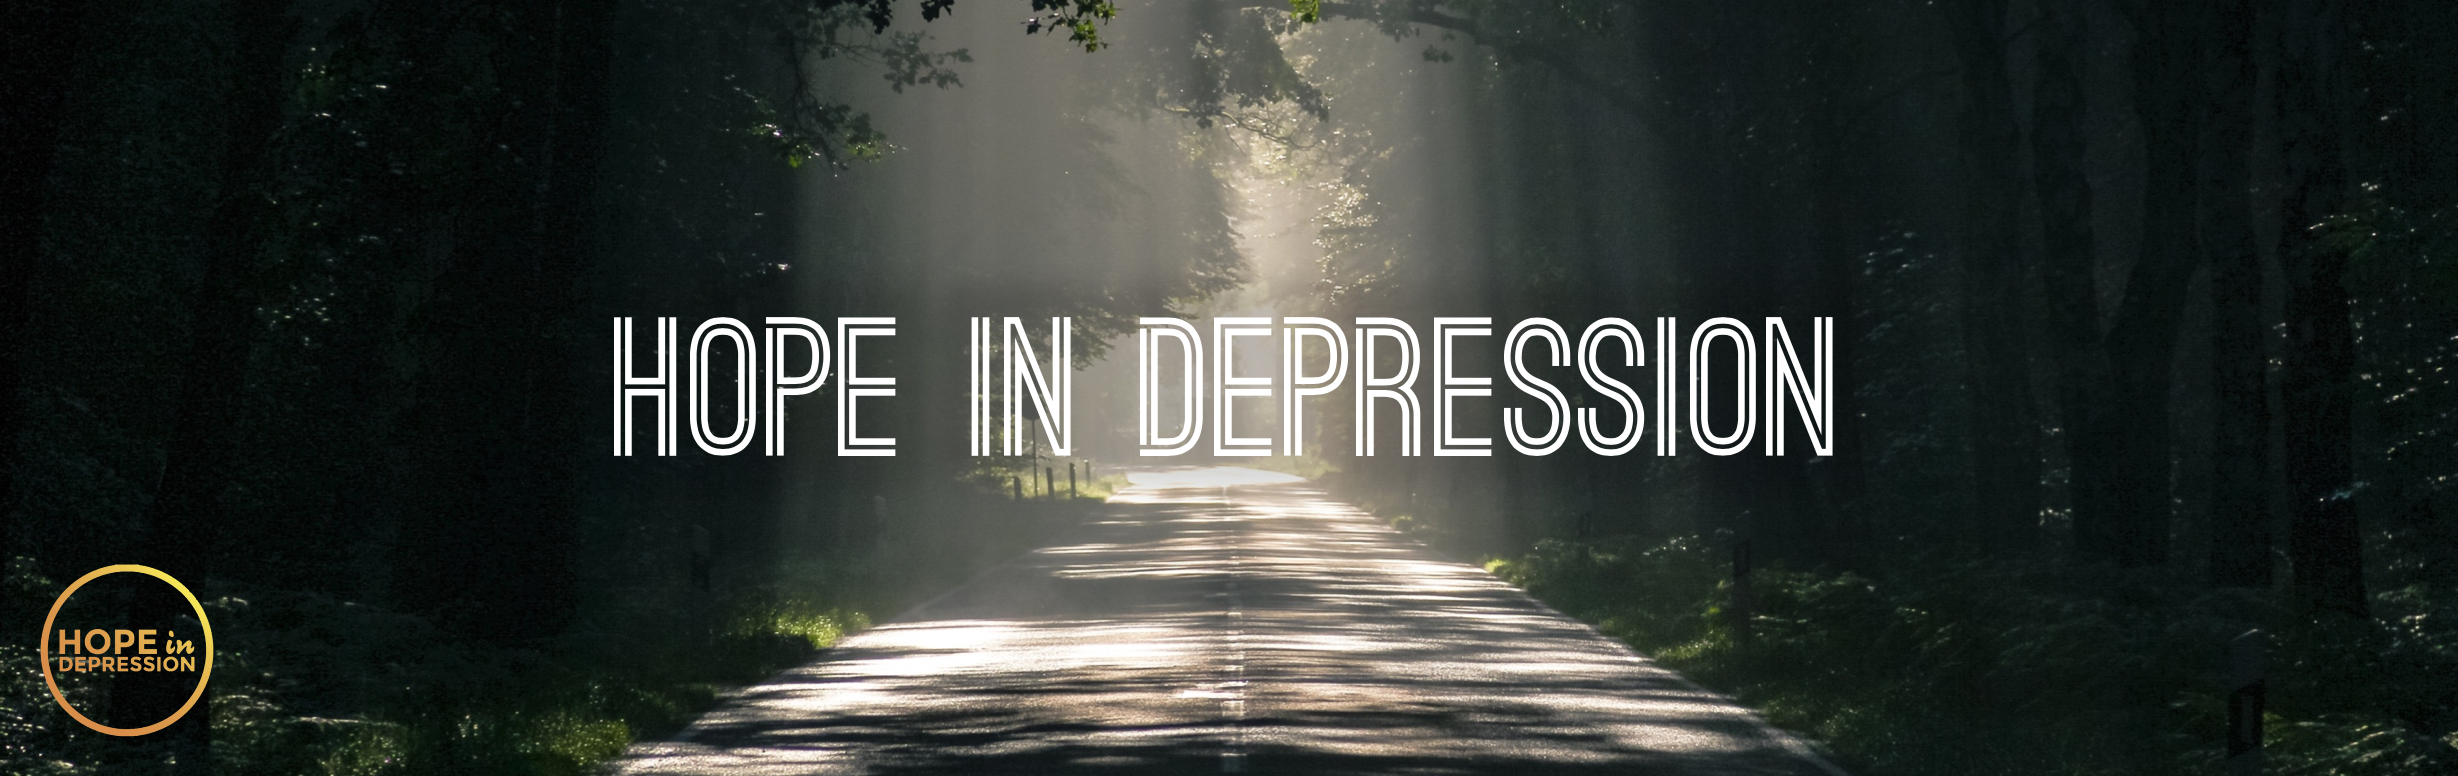 hope in depression